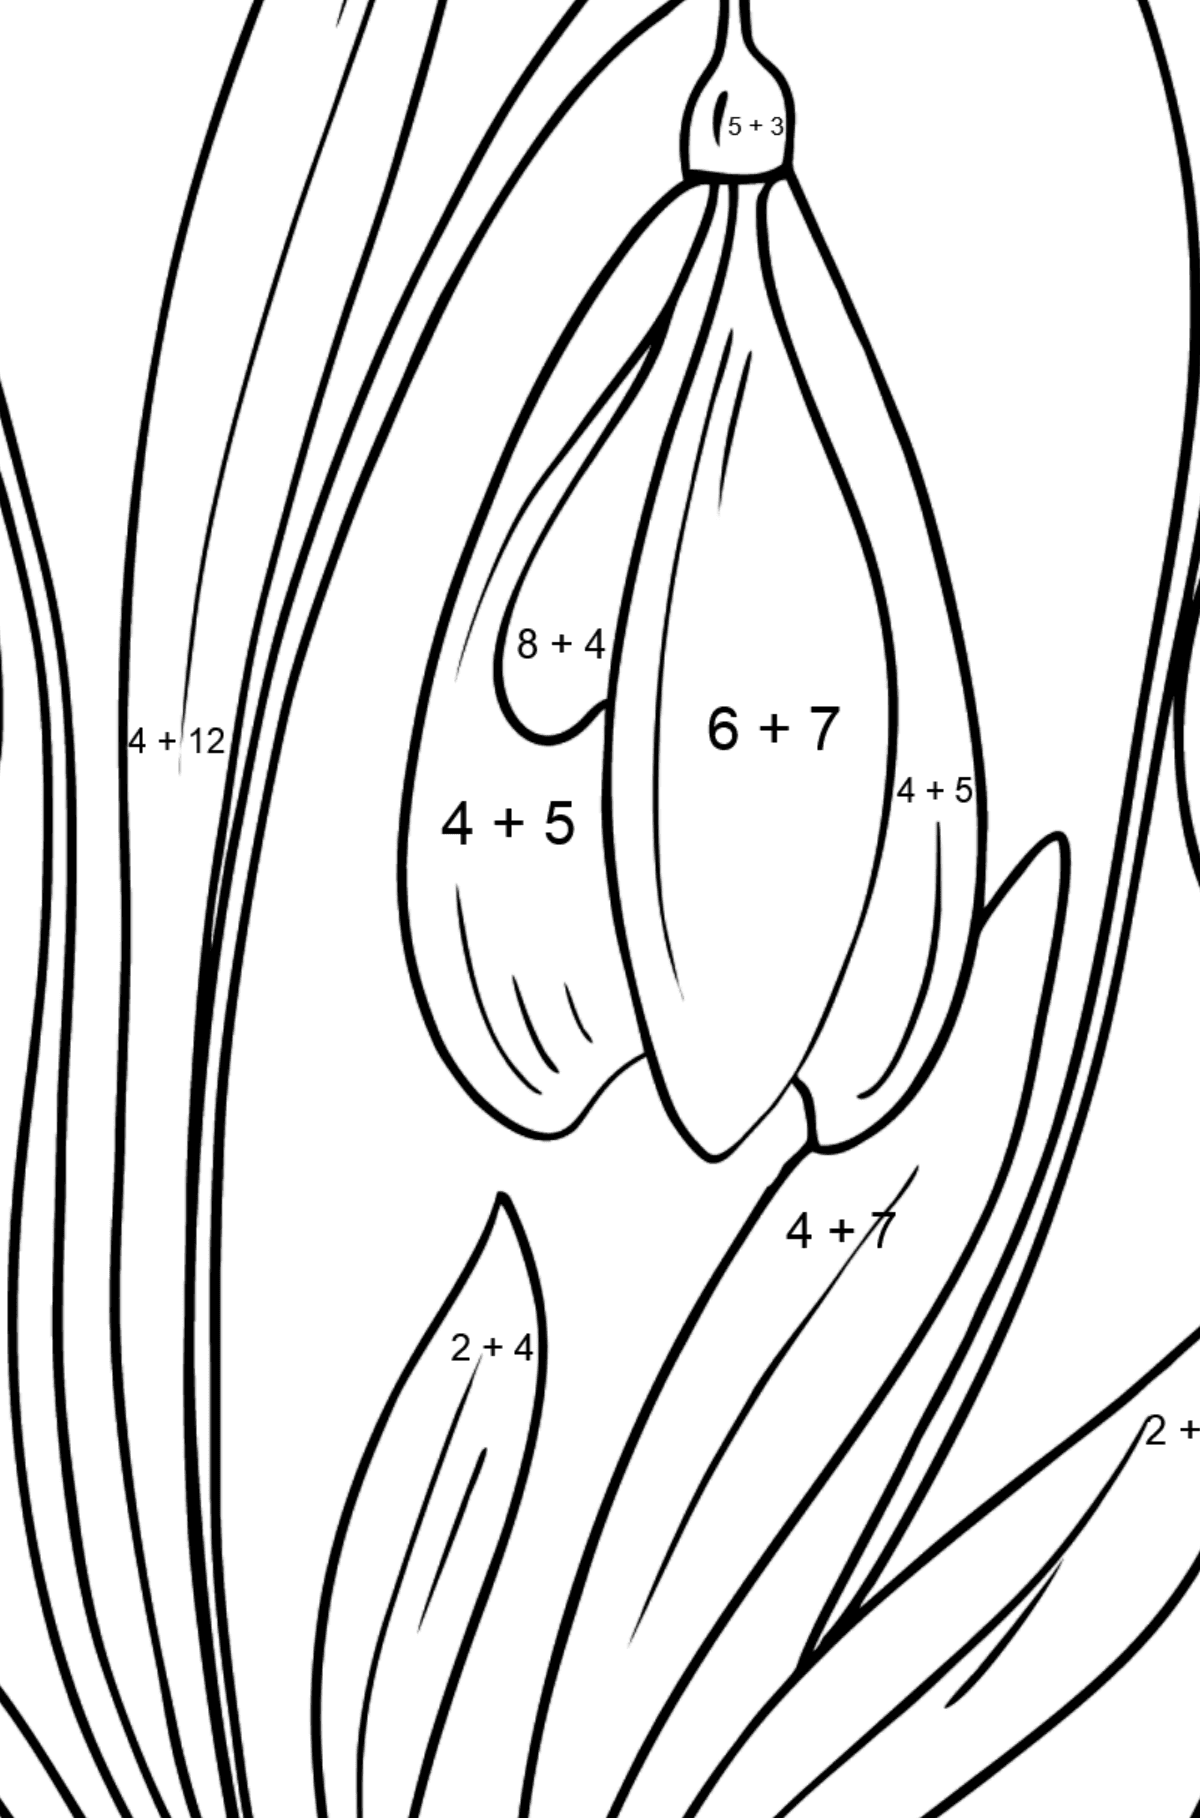 Snowdrops Coloring Page - Math Coloring - Addition for Kids